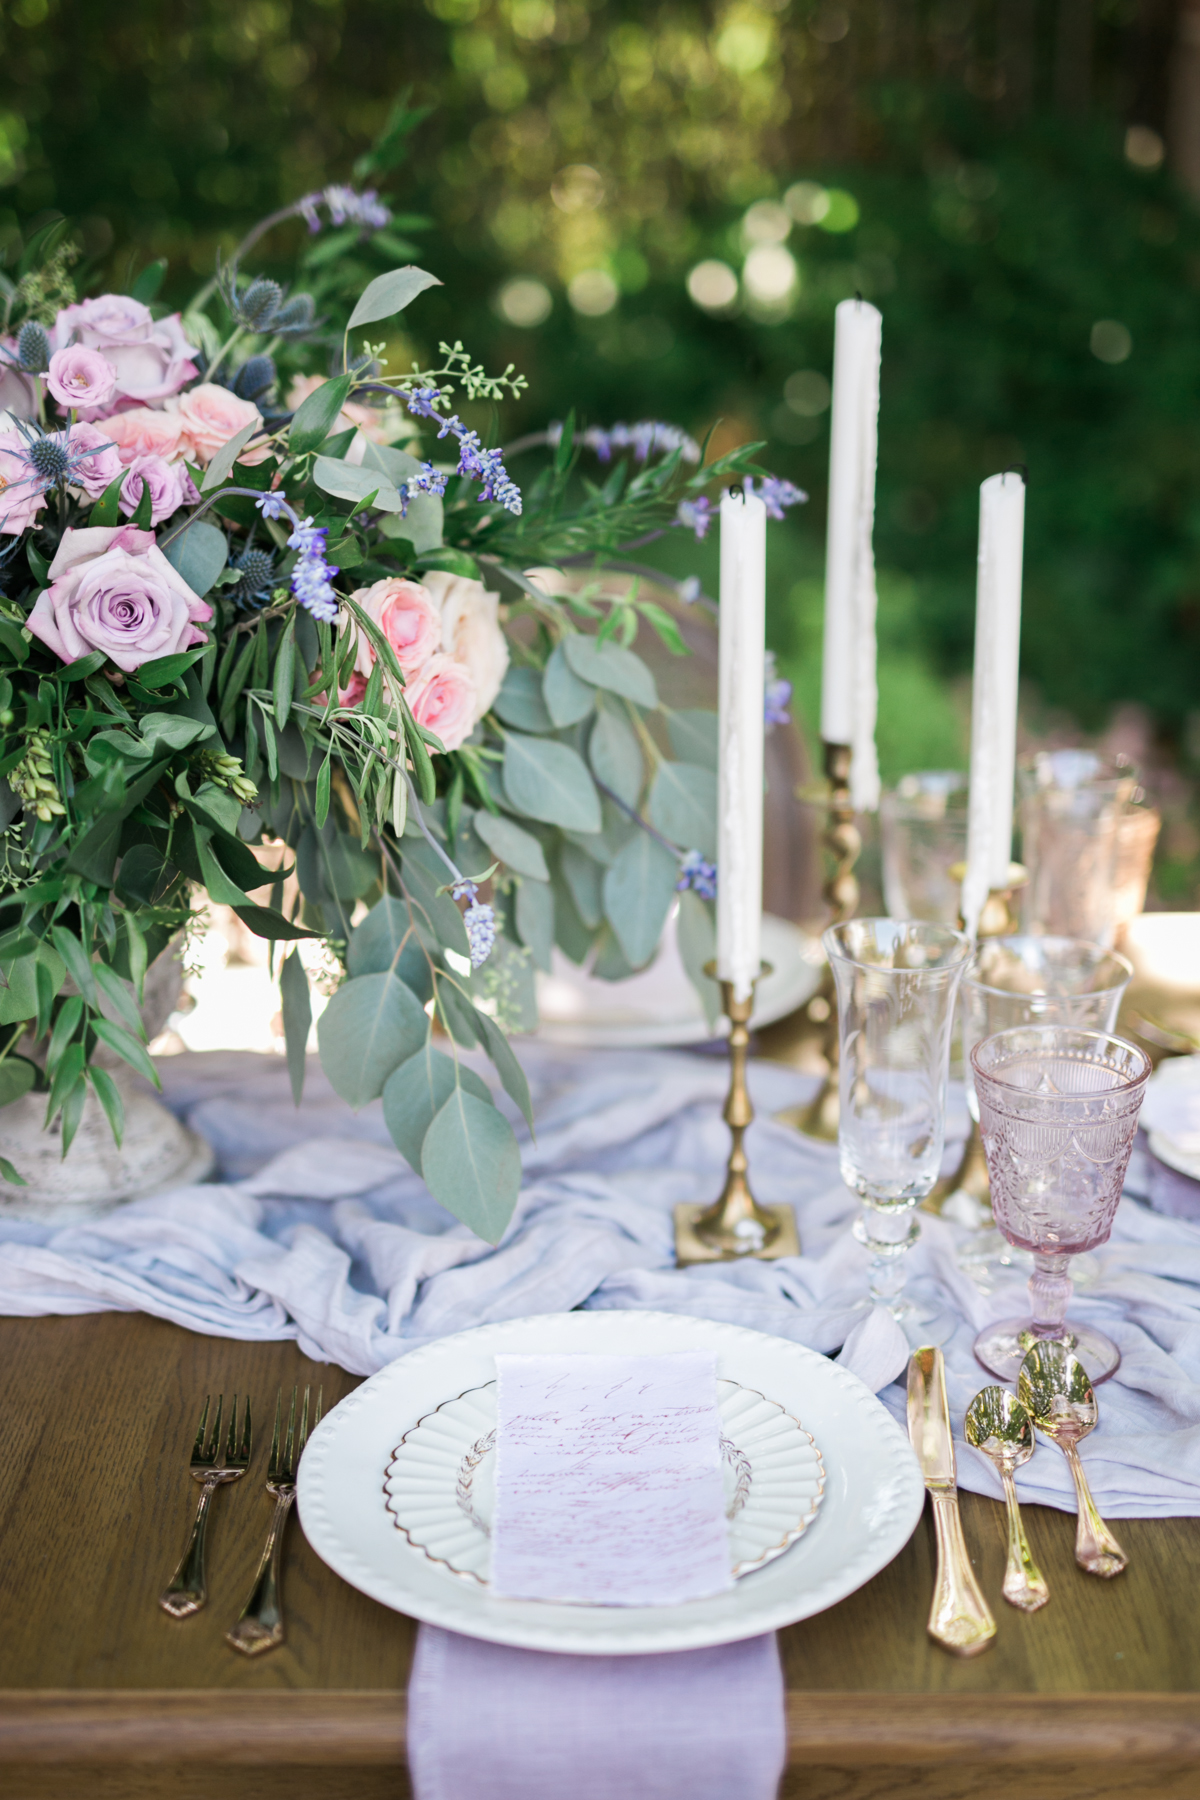 August In Bloom - Romantic reception - Fairytale Wedding (Wedluxe)